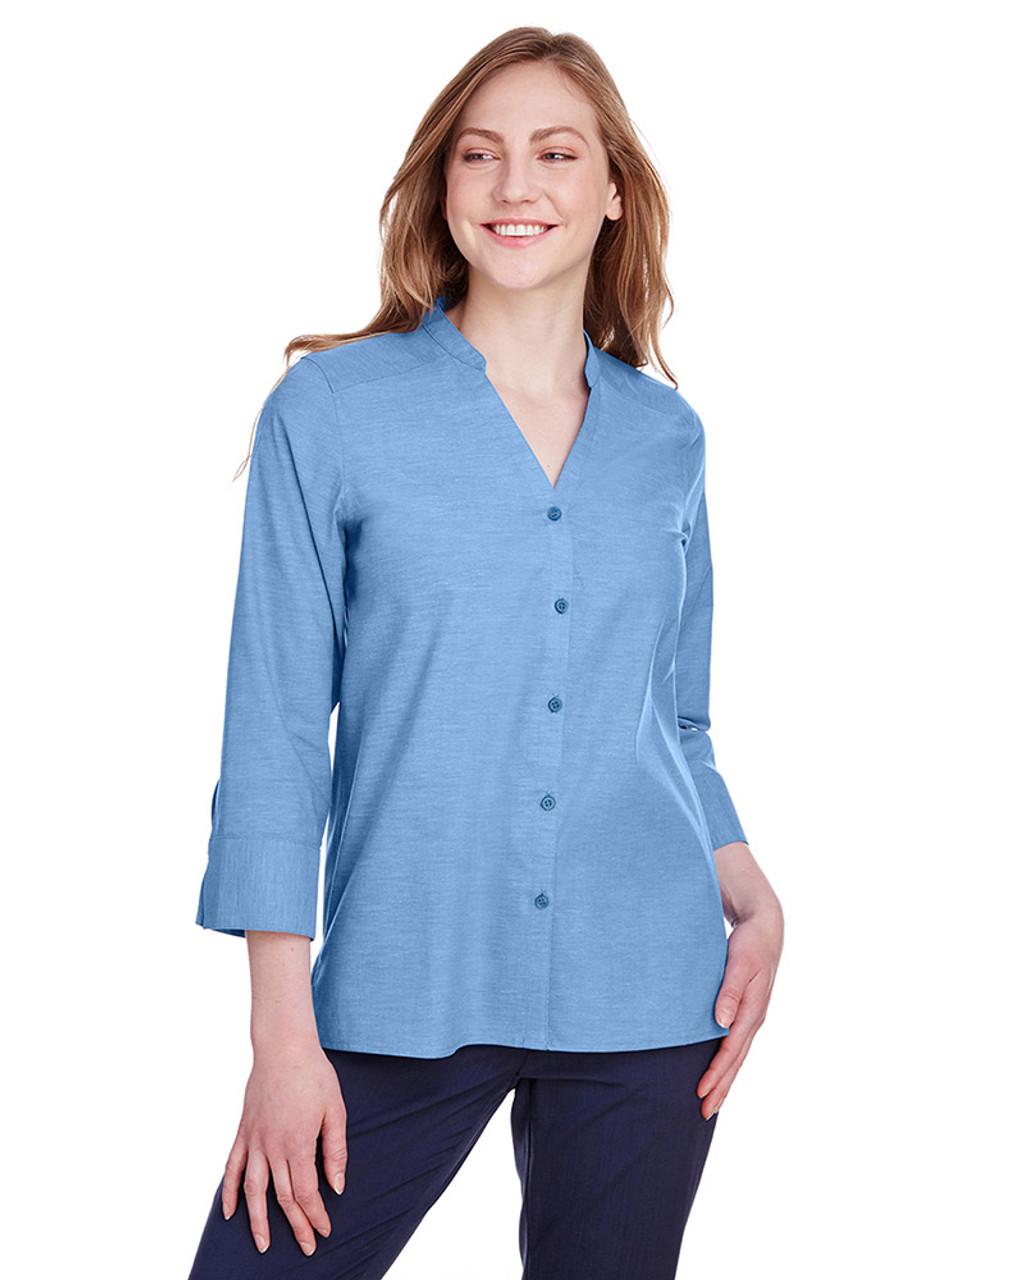 French Blue - DG562W Devon & Jones Ladies' Crown Collection™ Stretch Pinpoint Chambray 3/4 Sleeve Blouse | Blankclothing.ca